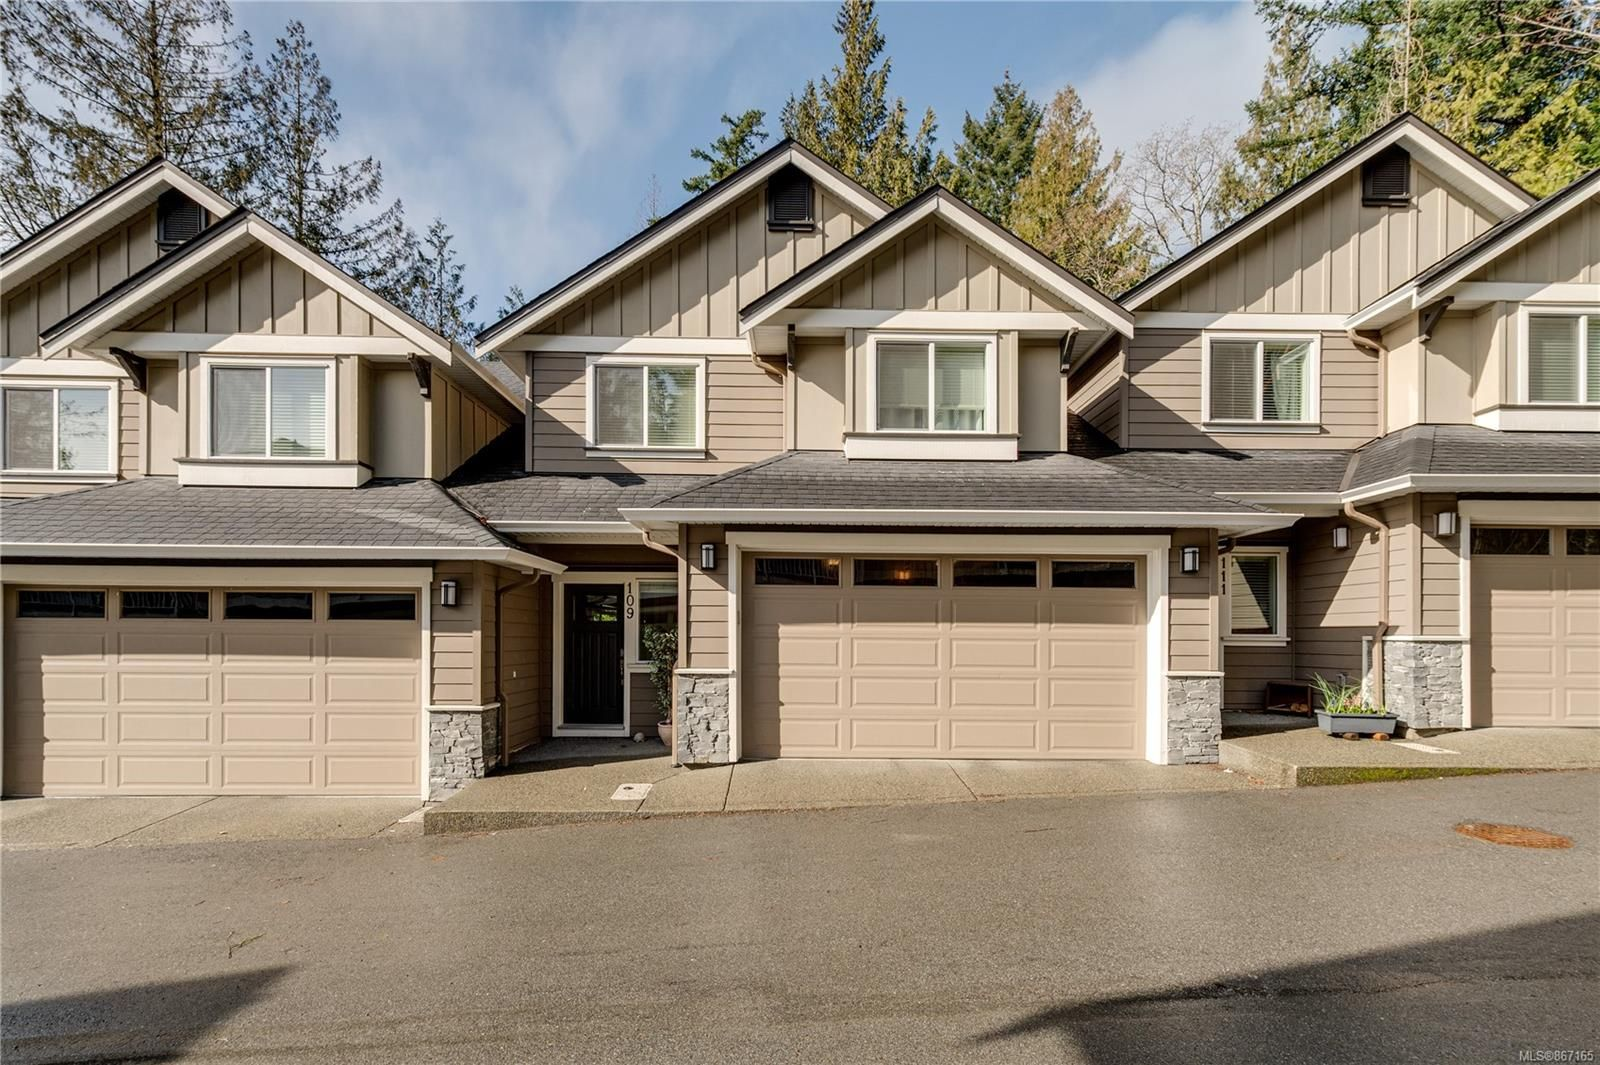 Main Photo: 109 3439 Ambrosia Cres in : La Happy Valley Row/Townhouse for sale (Langford)  : MLS®# 867165